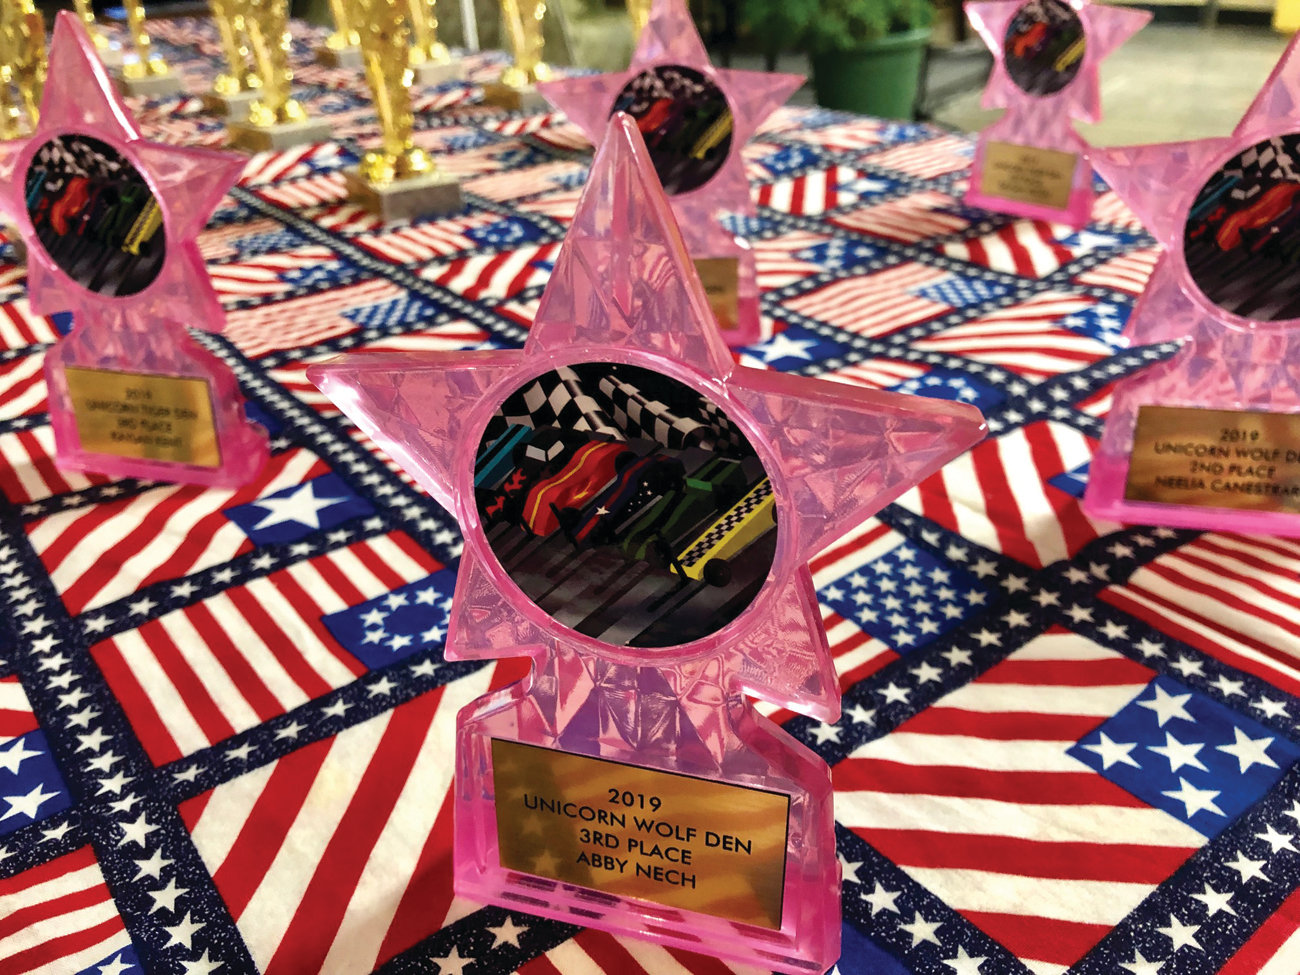 Shiny pink trophies await their Unicorn recipients.